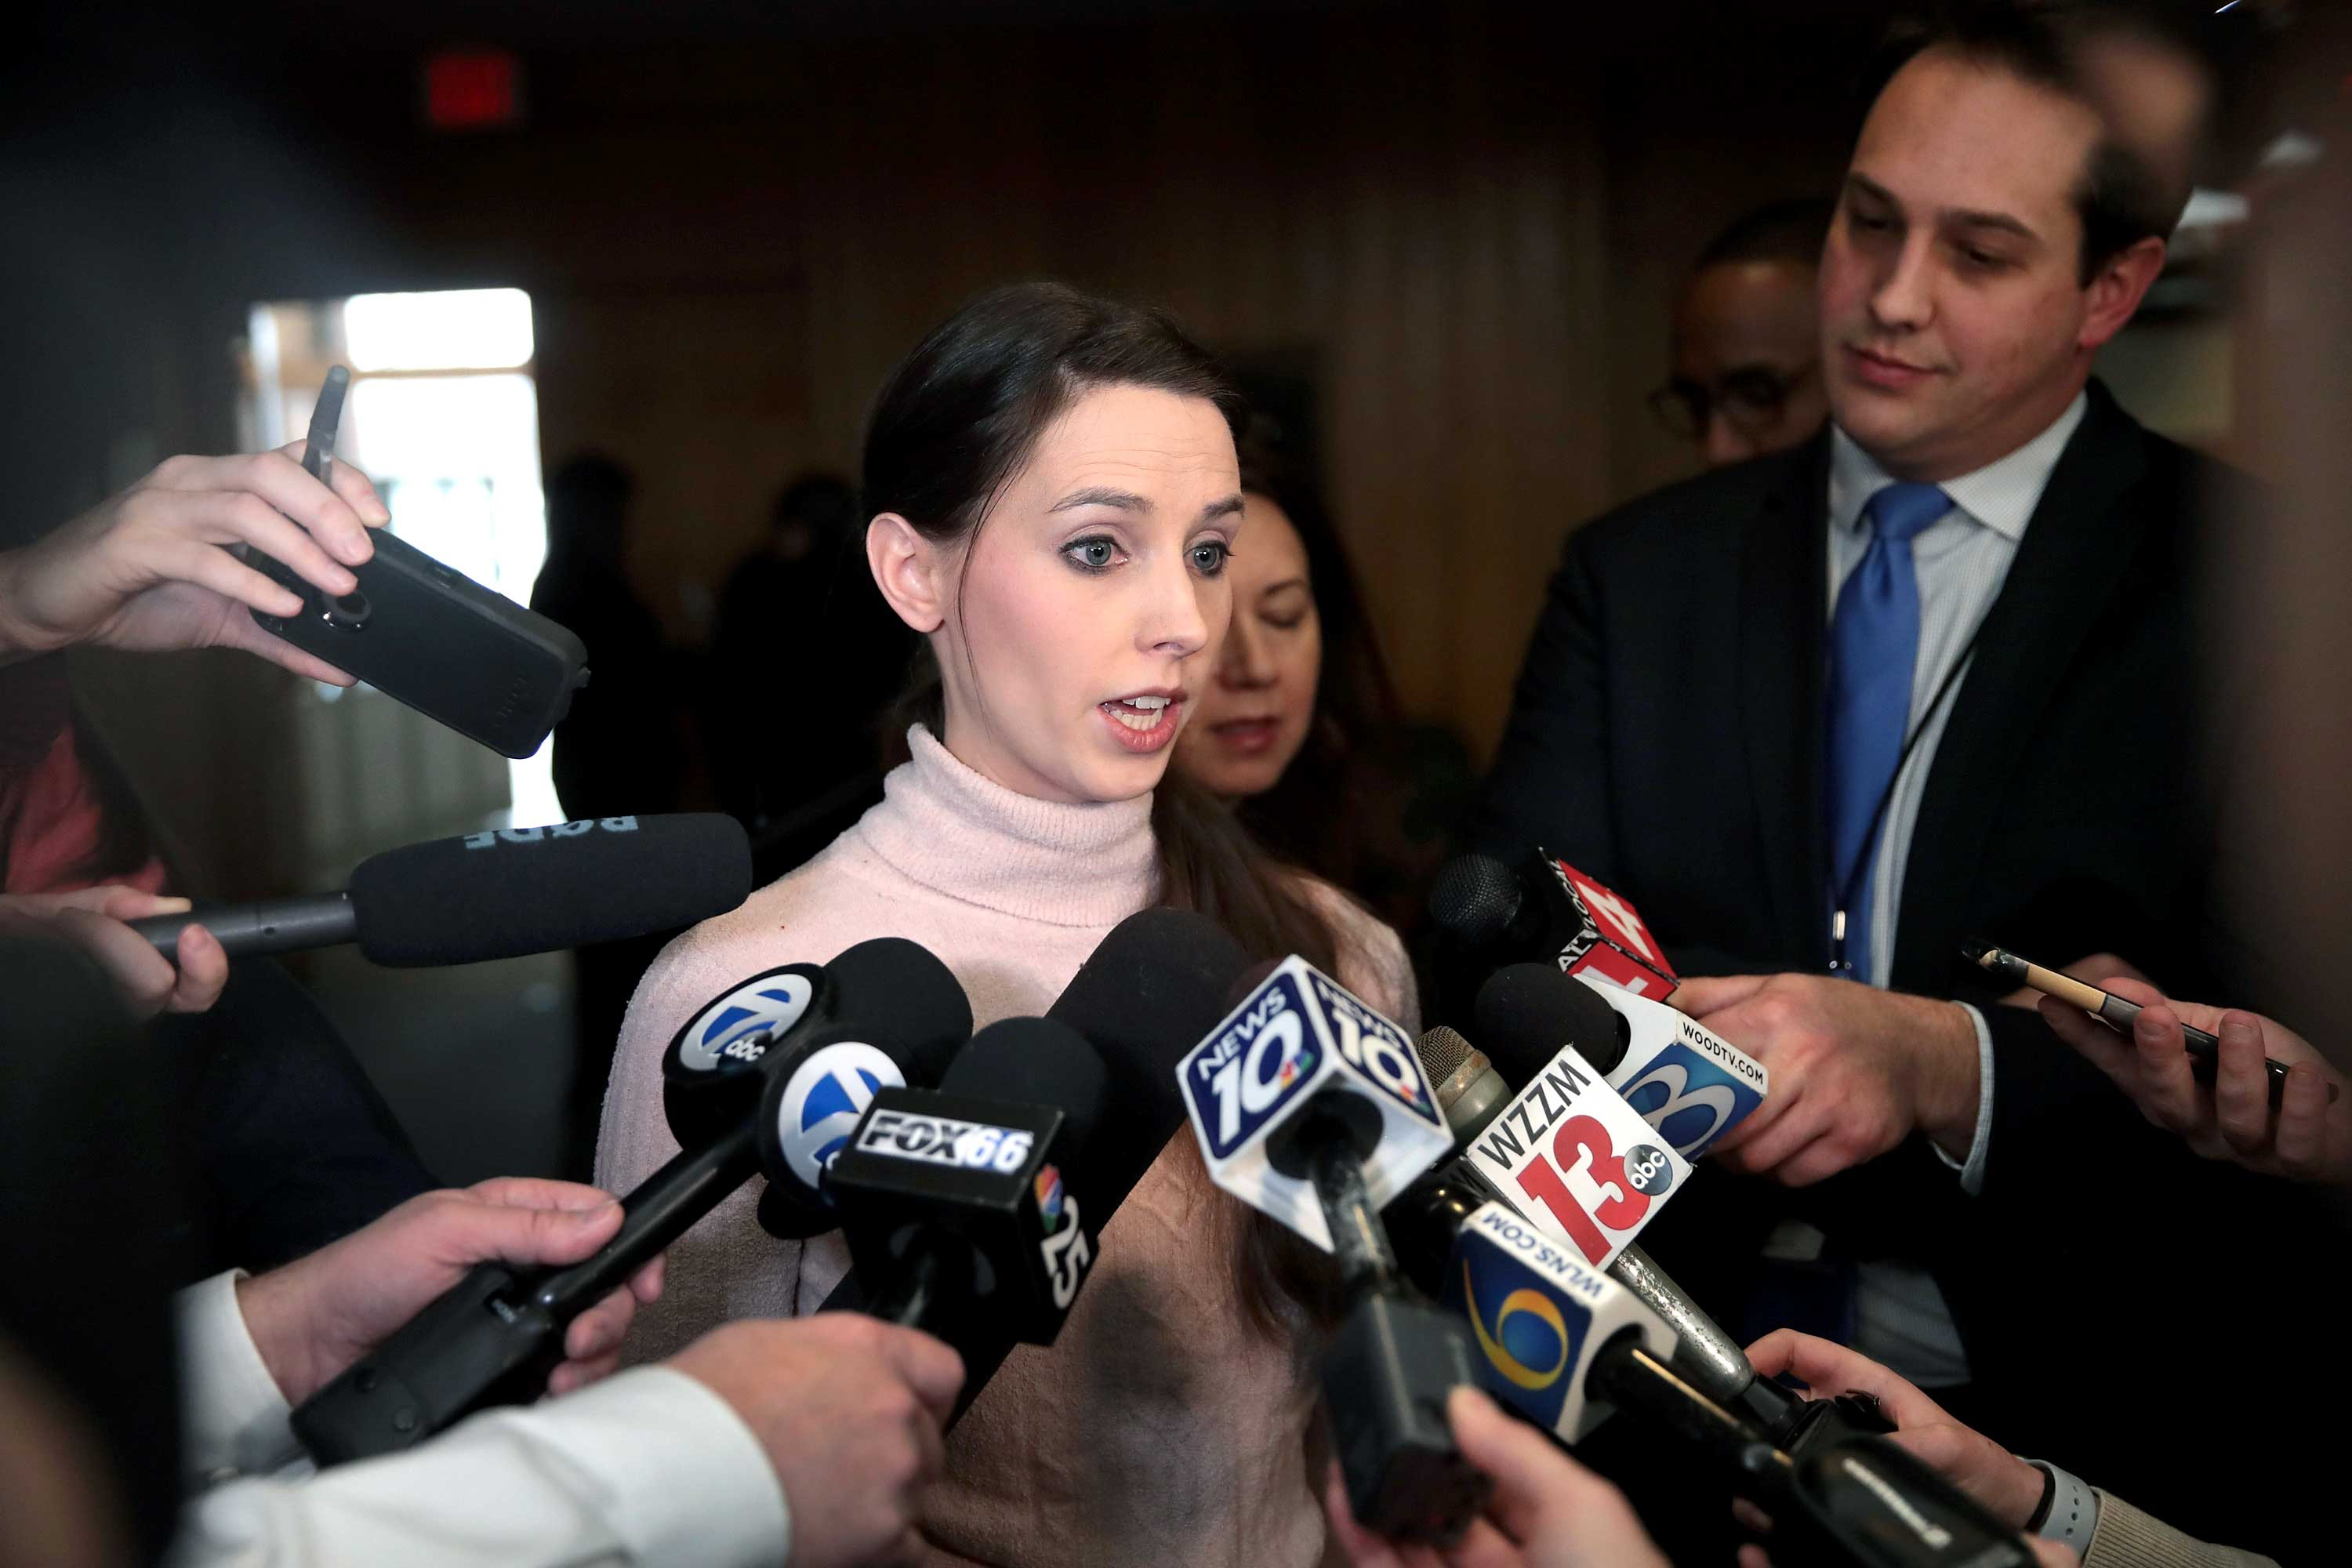 I faced Larry Nassar in court. Epstein's accusers should have had the same chance.